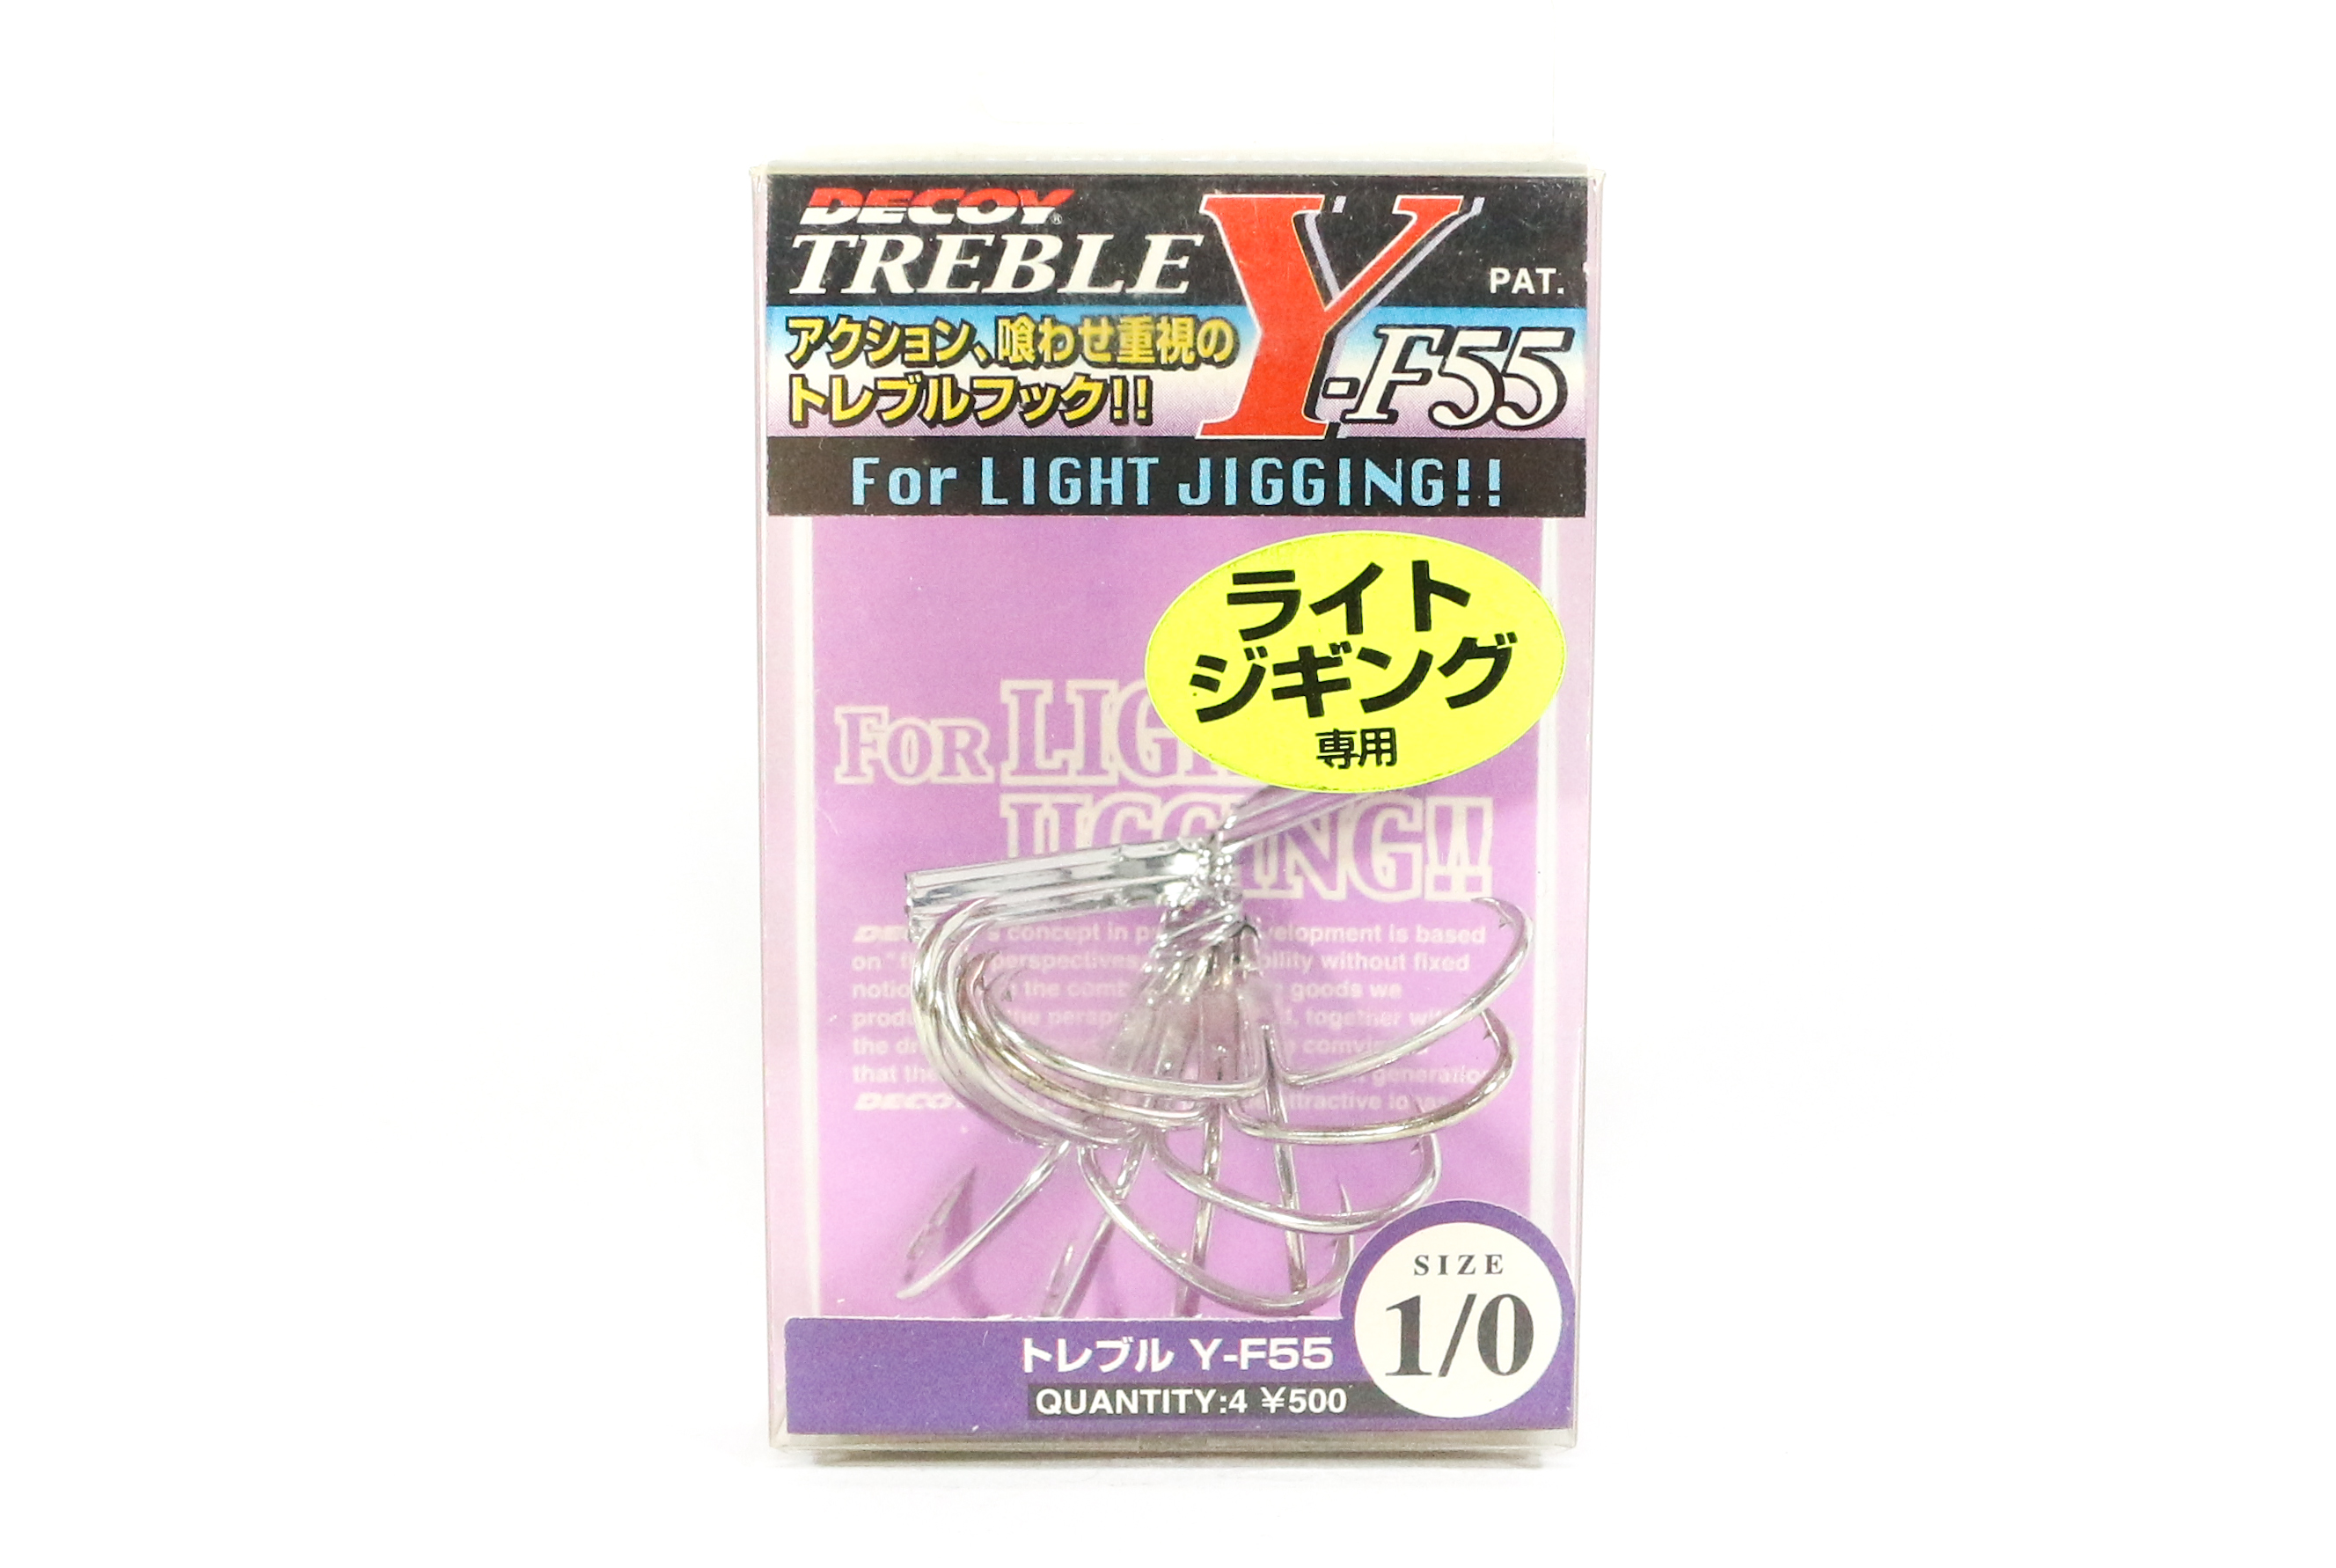 Decoy Y-F55 Treble Hook Light Jigging Treble Hooks Size 1/0 (2723)